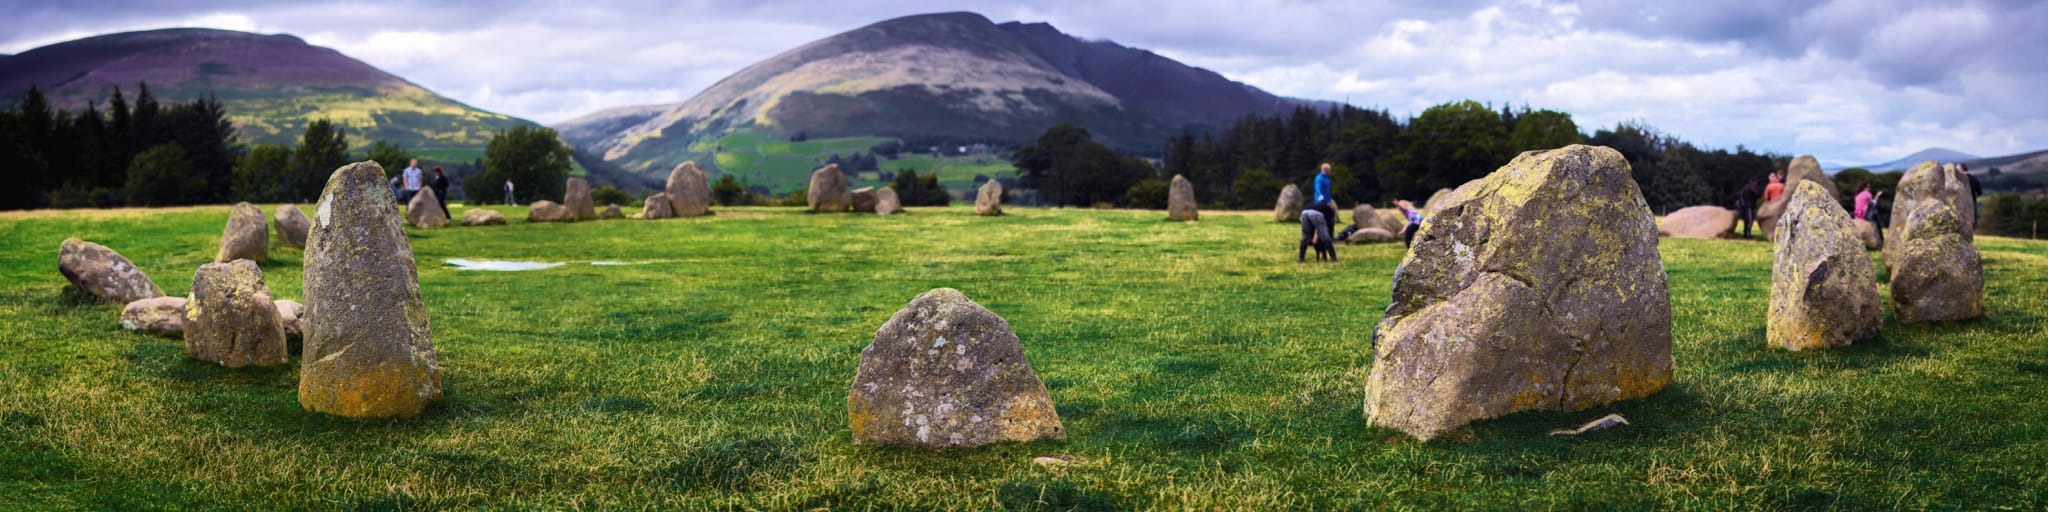 An ultra-wide panorama of Castlerigg Stone circle, with Blencathra and Lonscale Fell looming behind.